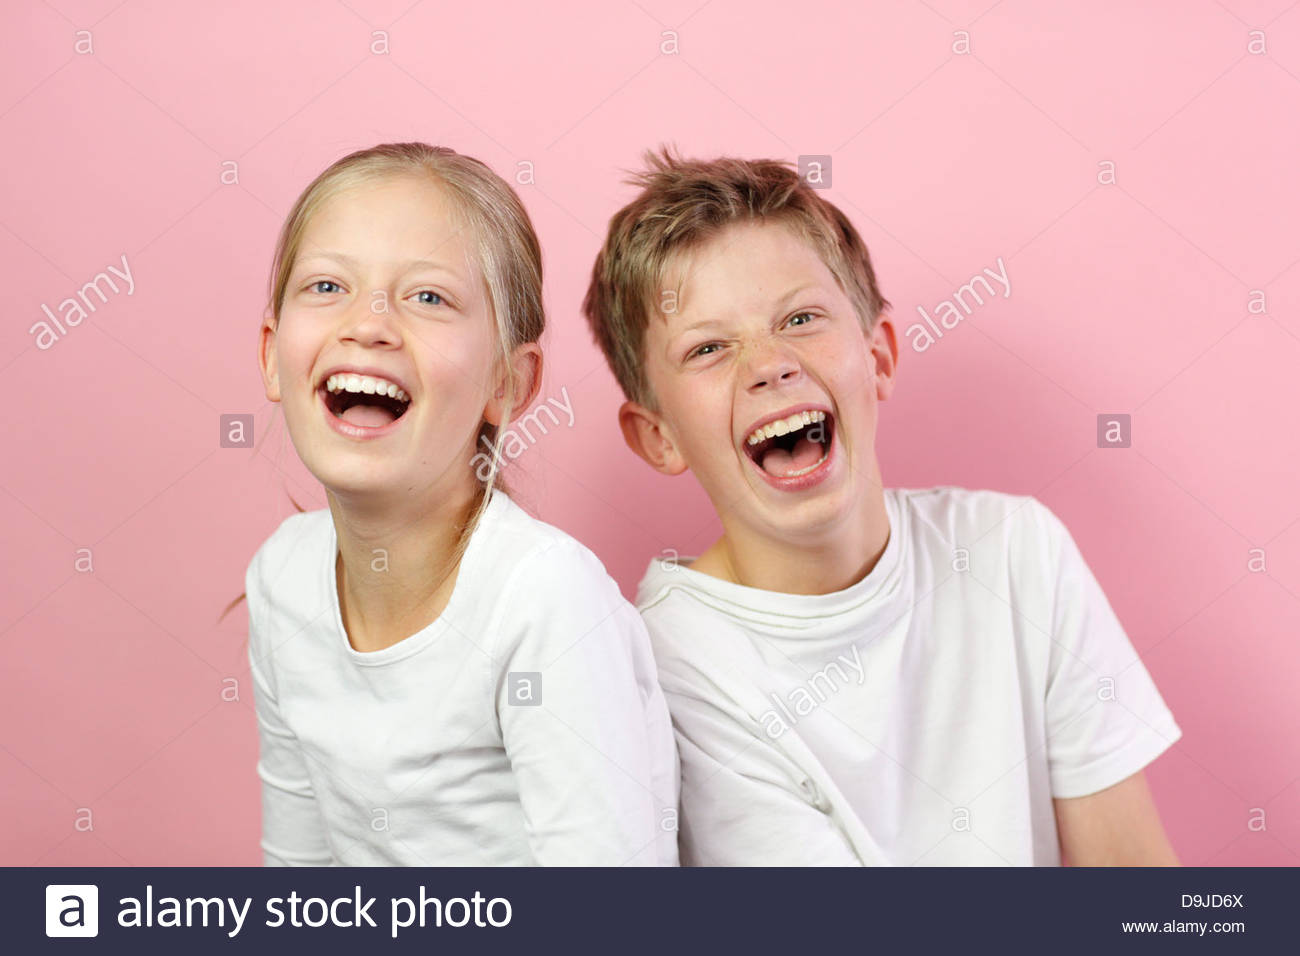 Brother and sister smiling together - Stock Image